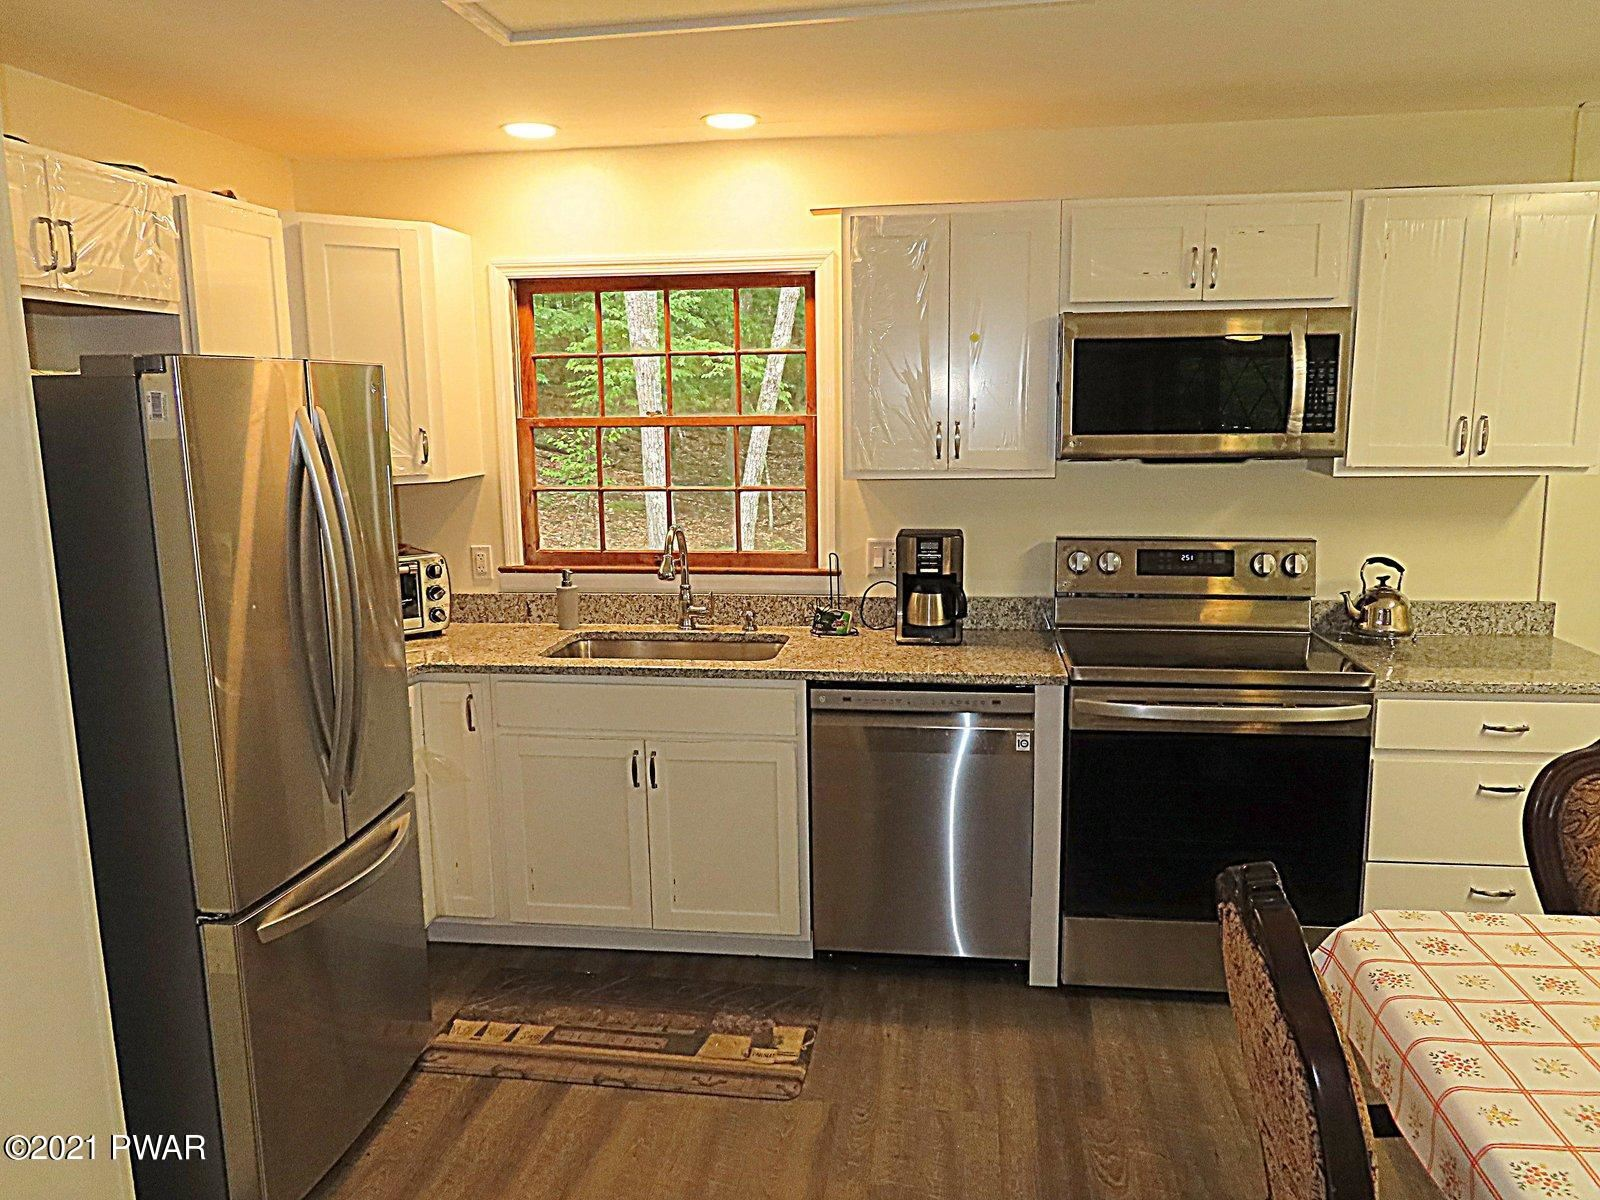 Photo of 109 Heavenly Valley Dr, Tafton, PA 18464 (MLS # 21-2417)